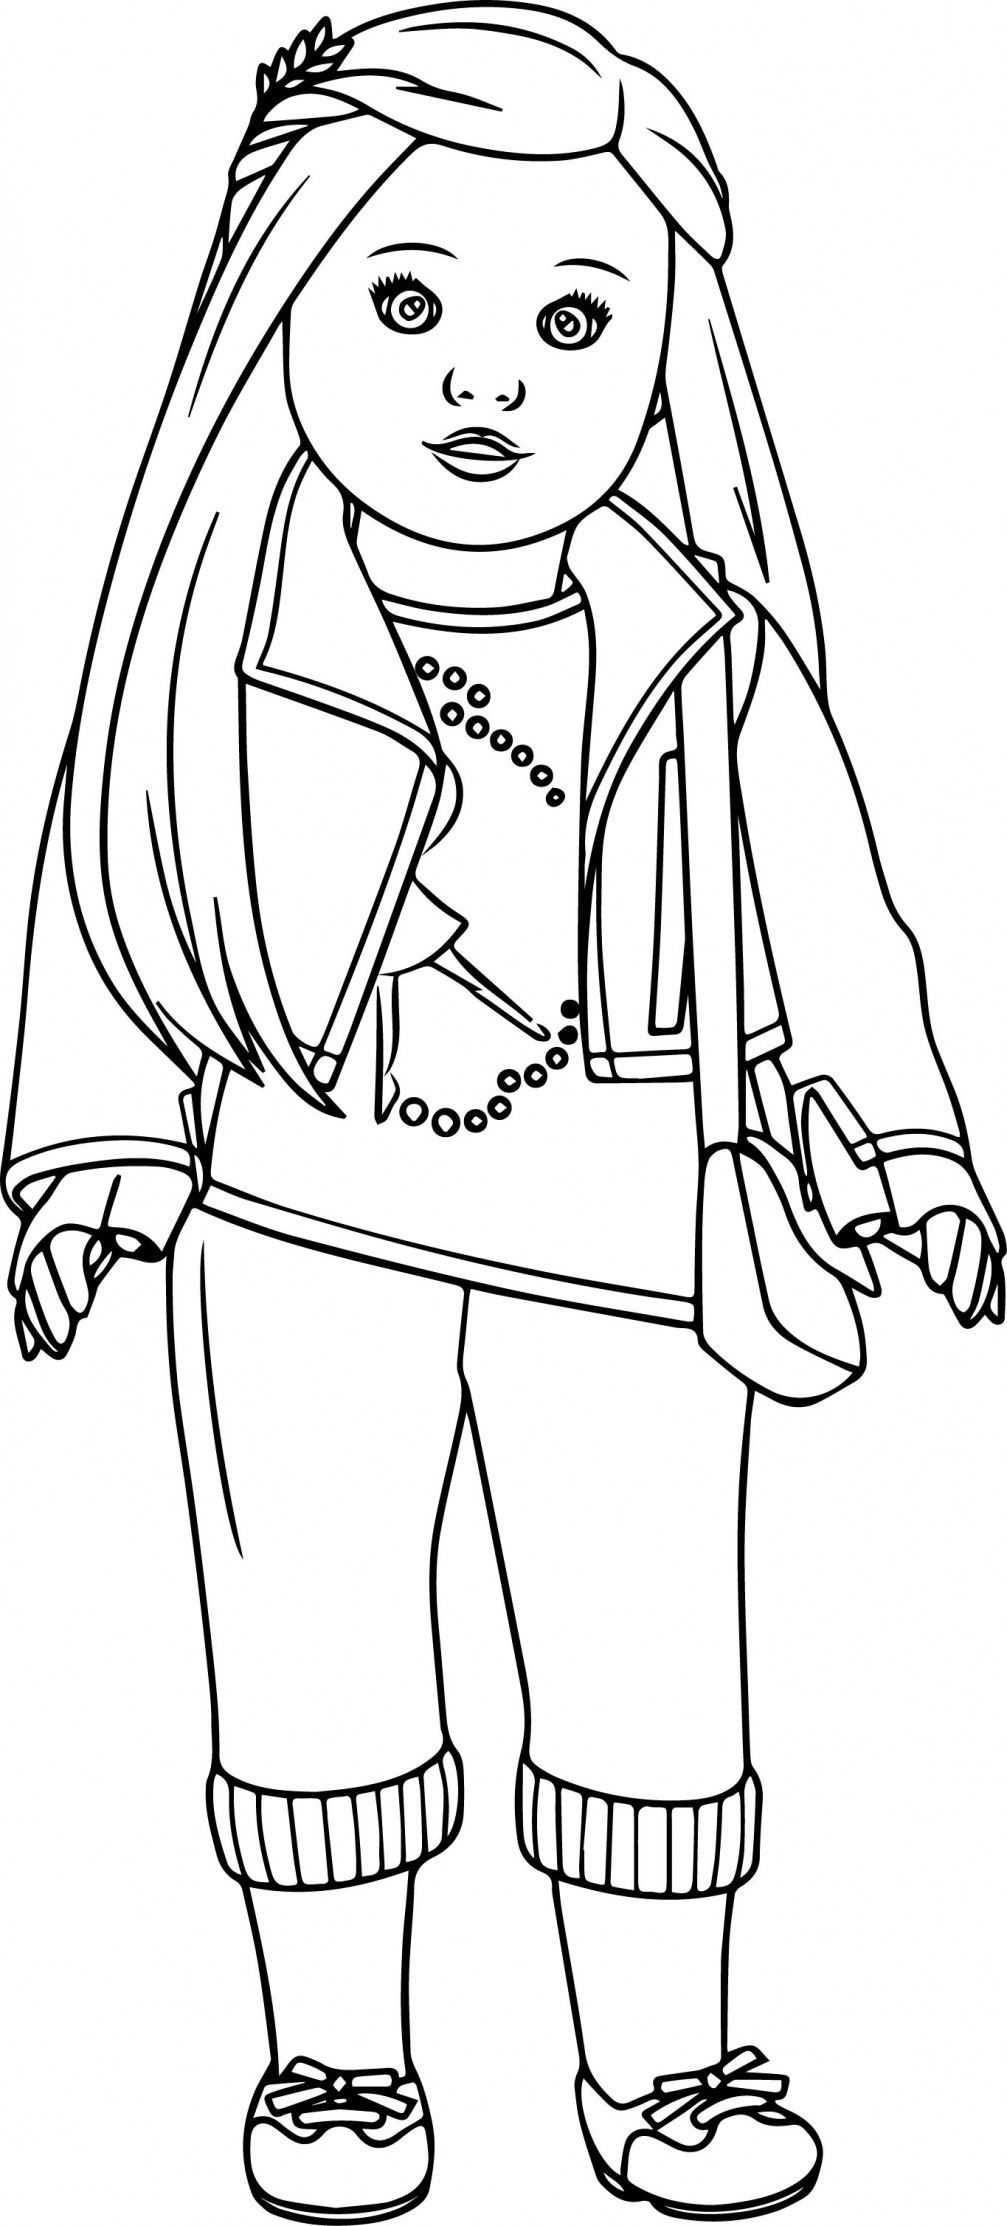 american girl doll coloring page american girl coloring pages  best coloring pages for kids doll page coloring girl american